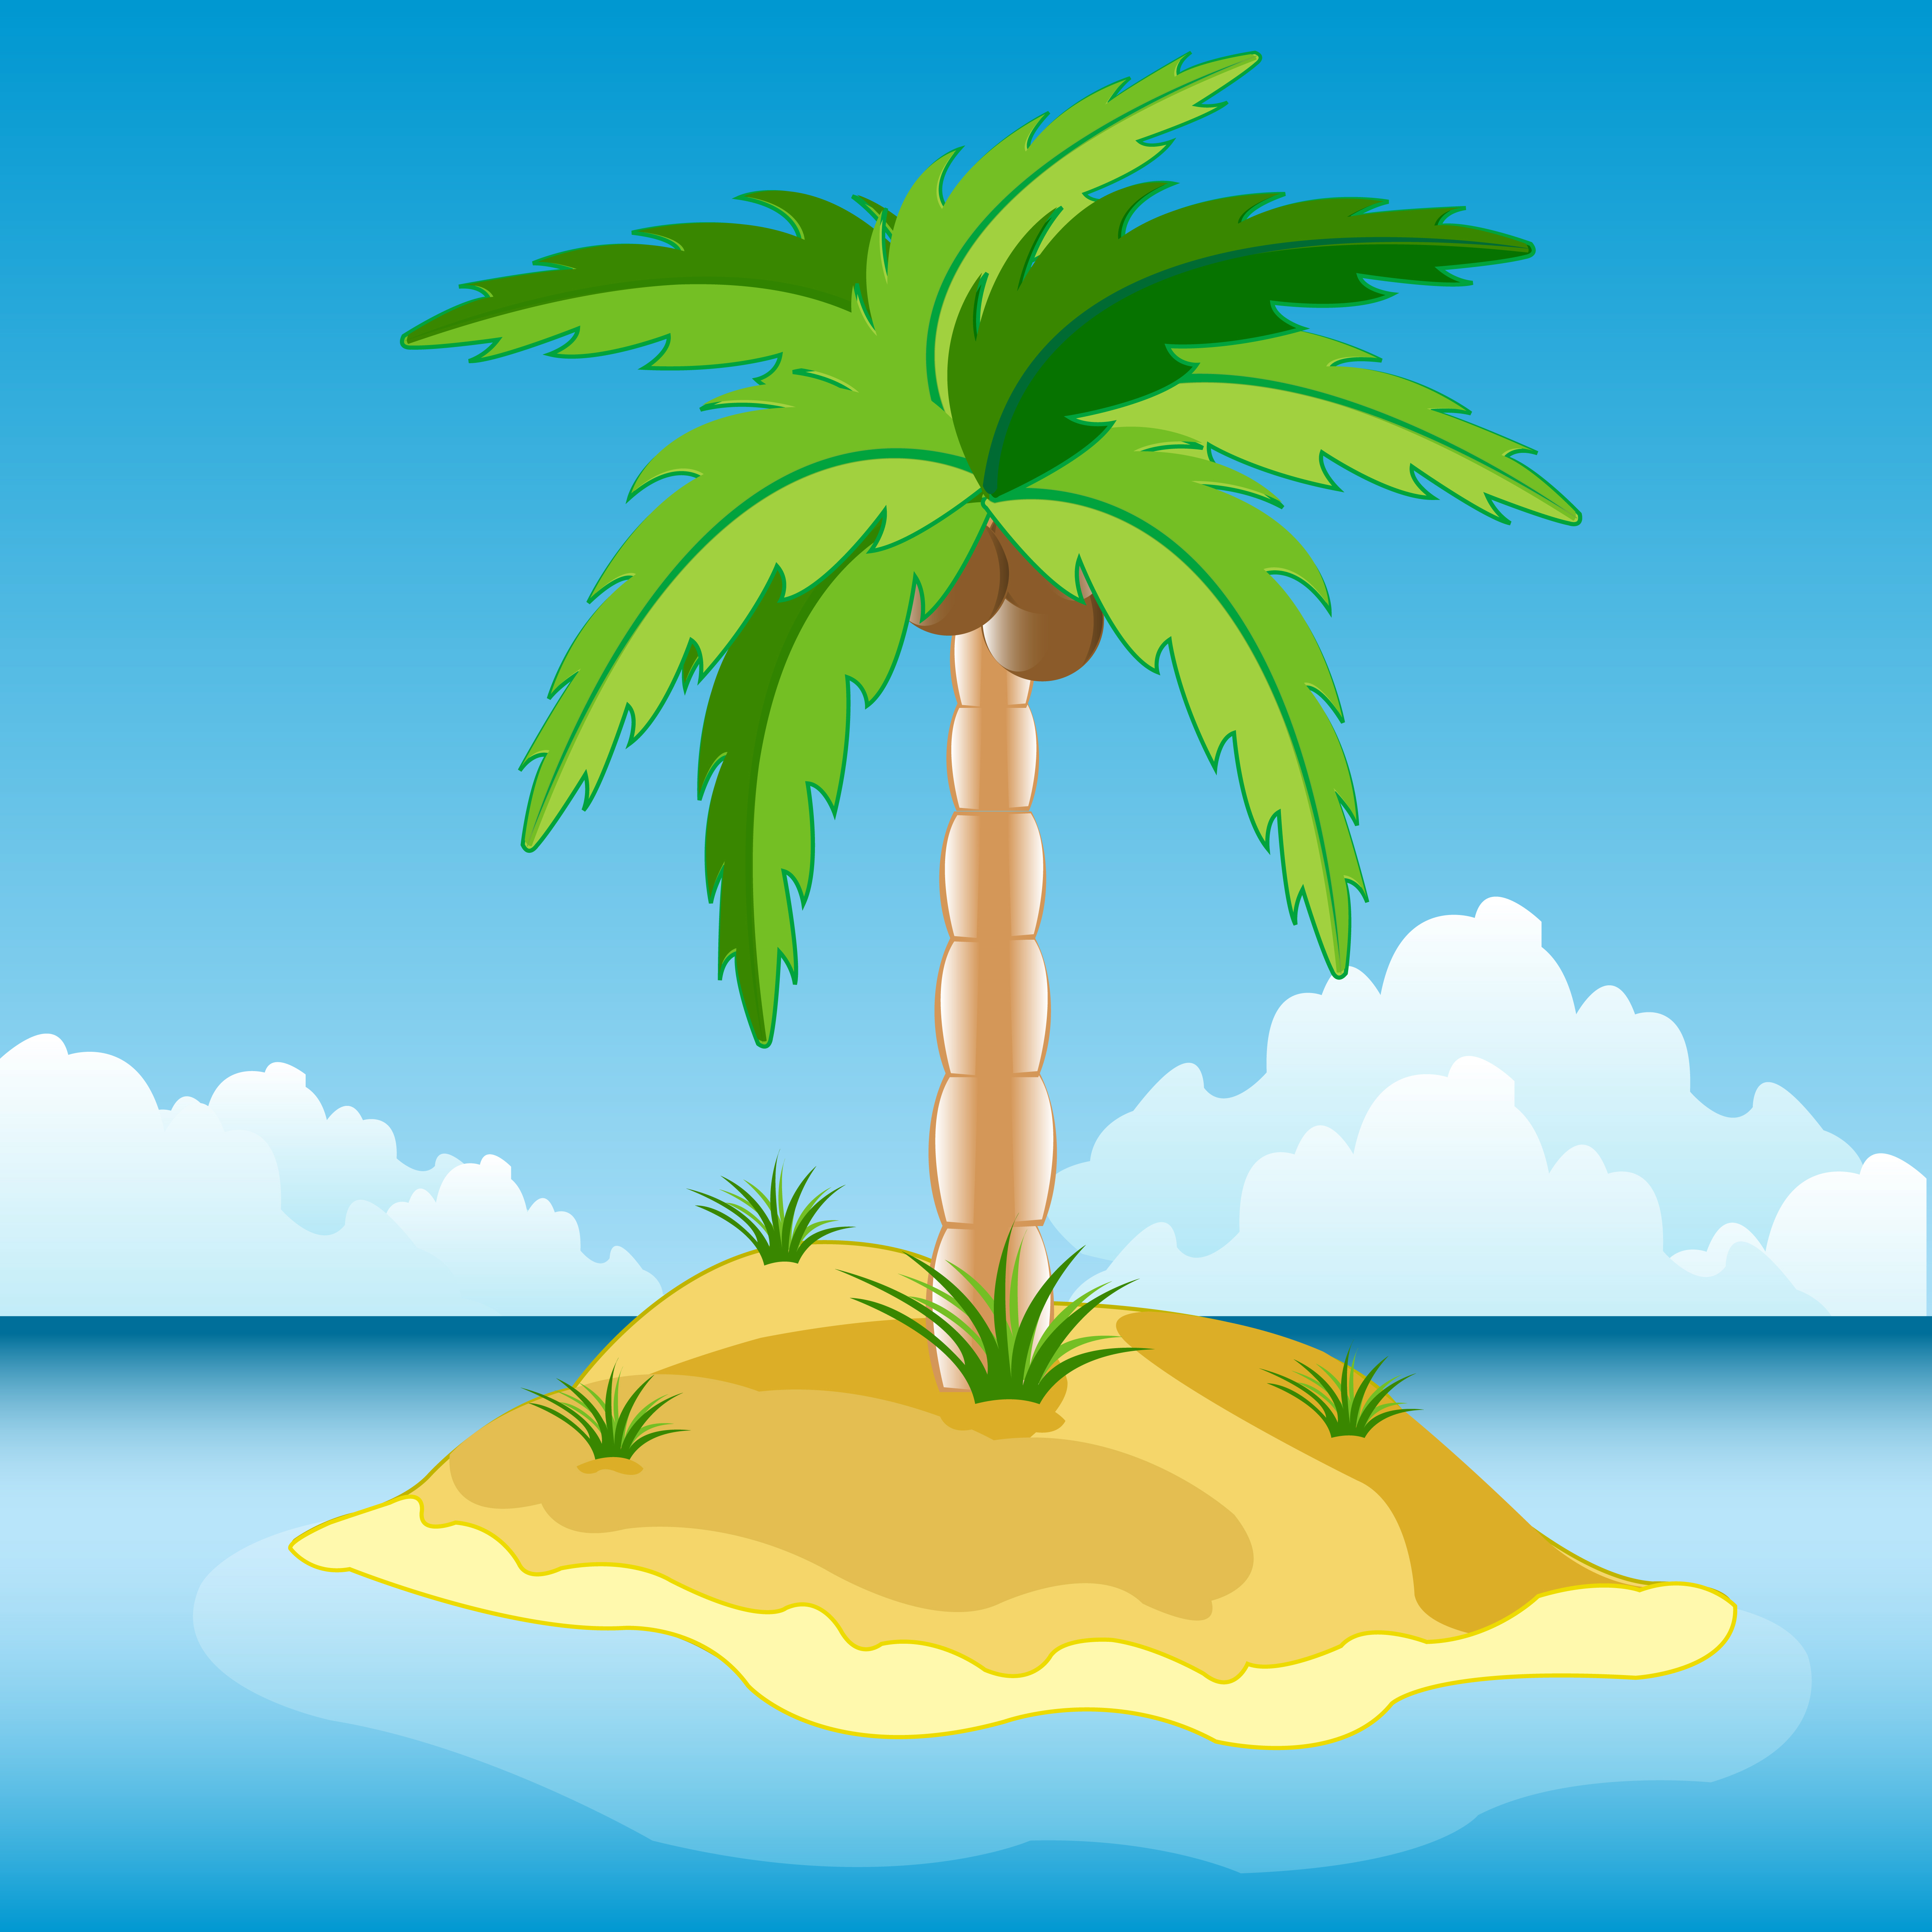 Tropical island with palm tree